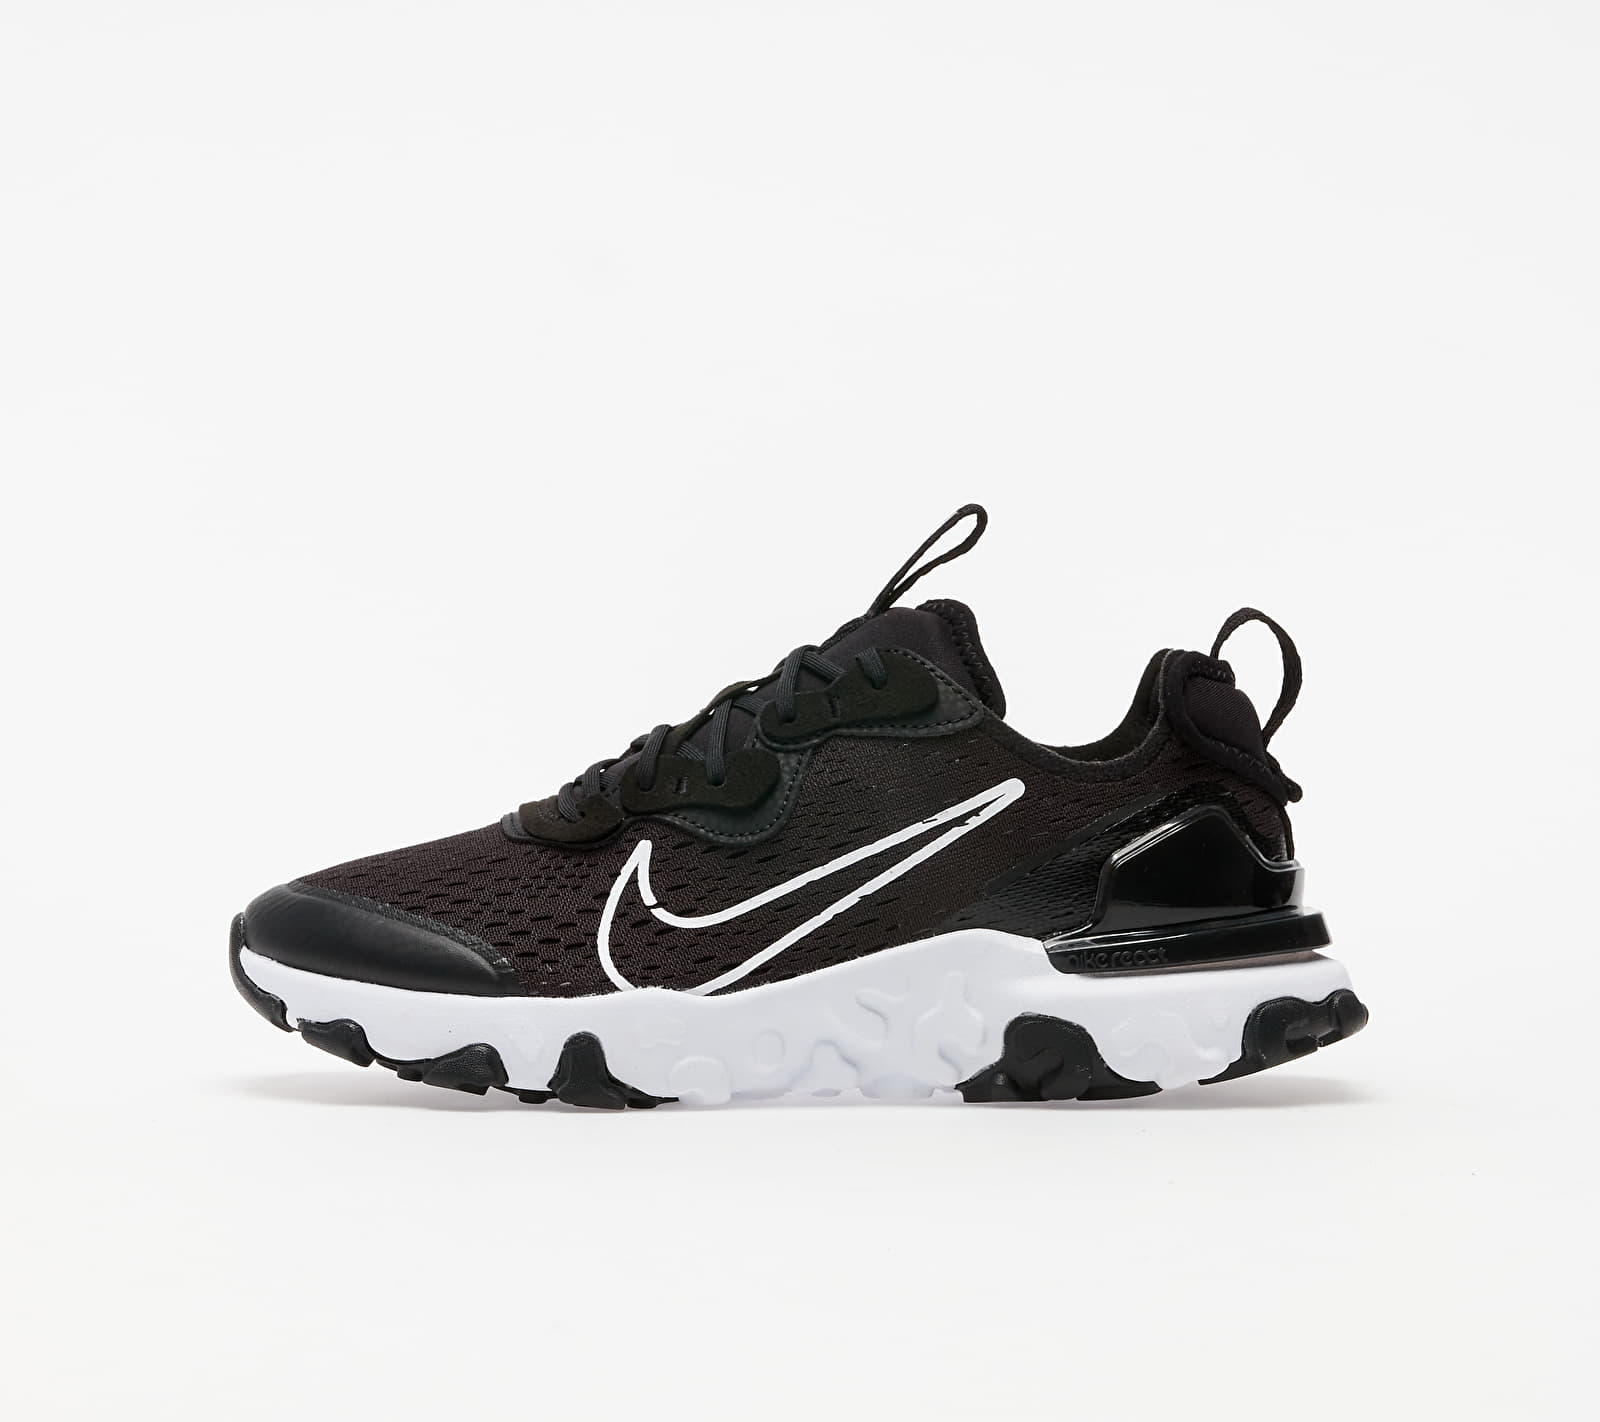 Nike React Vision (GS) Black/ White-Black EUR 37.5